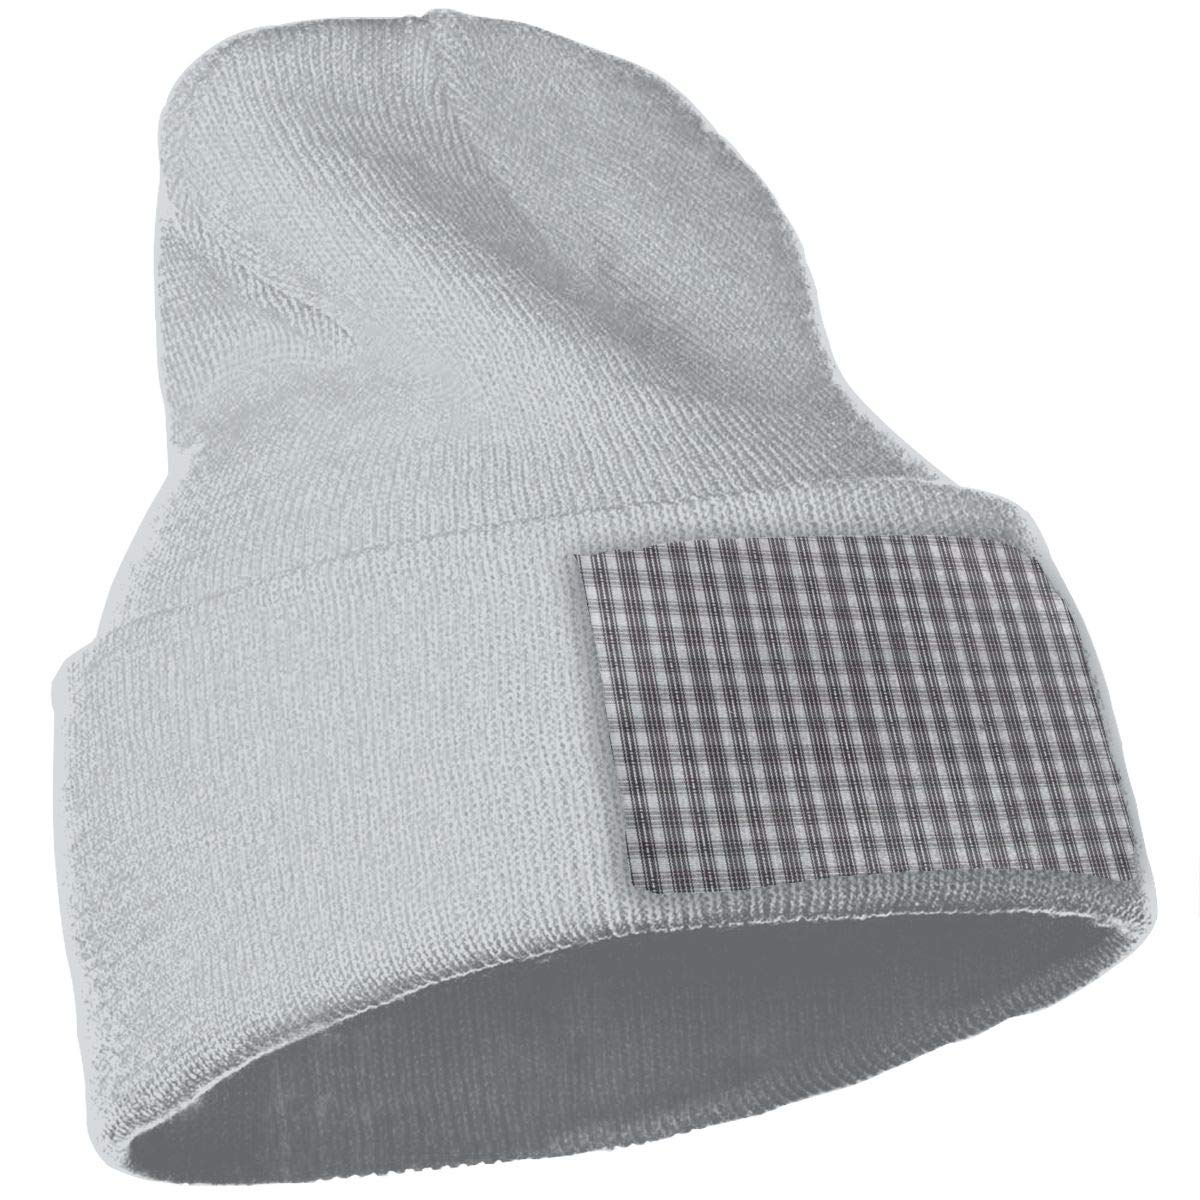 JimHappy Grey PPlaid Cloth Hat for Men and Women Winter Warm Hats Knit Slouchy Thick Skull Cap Black